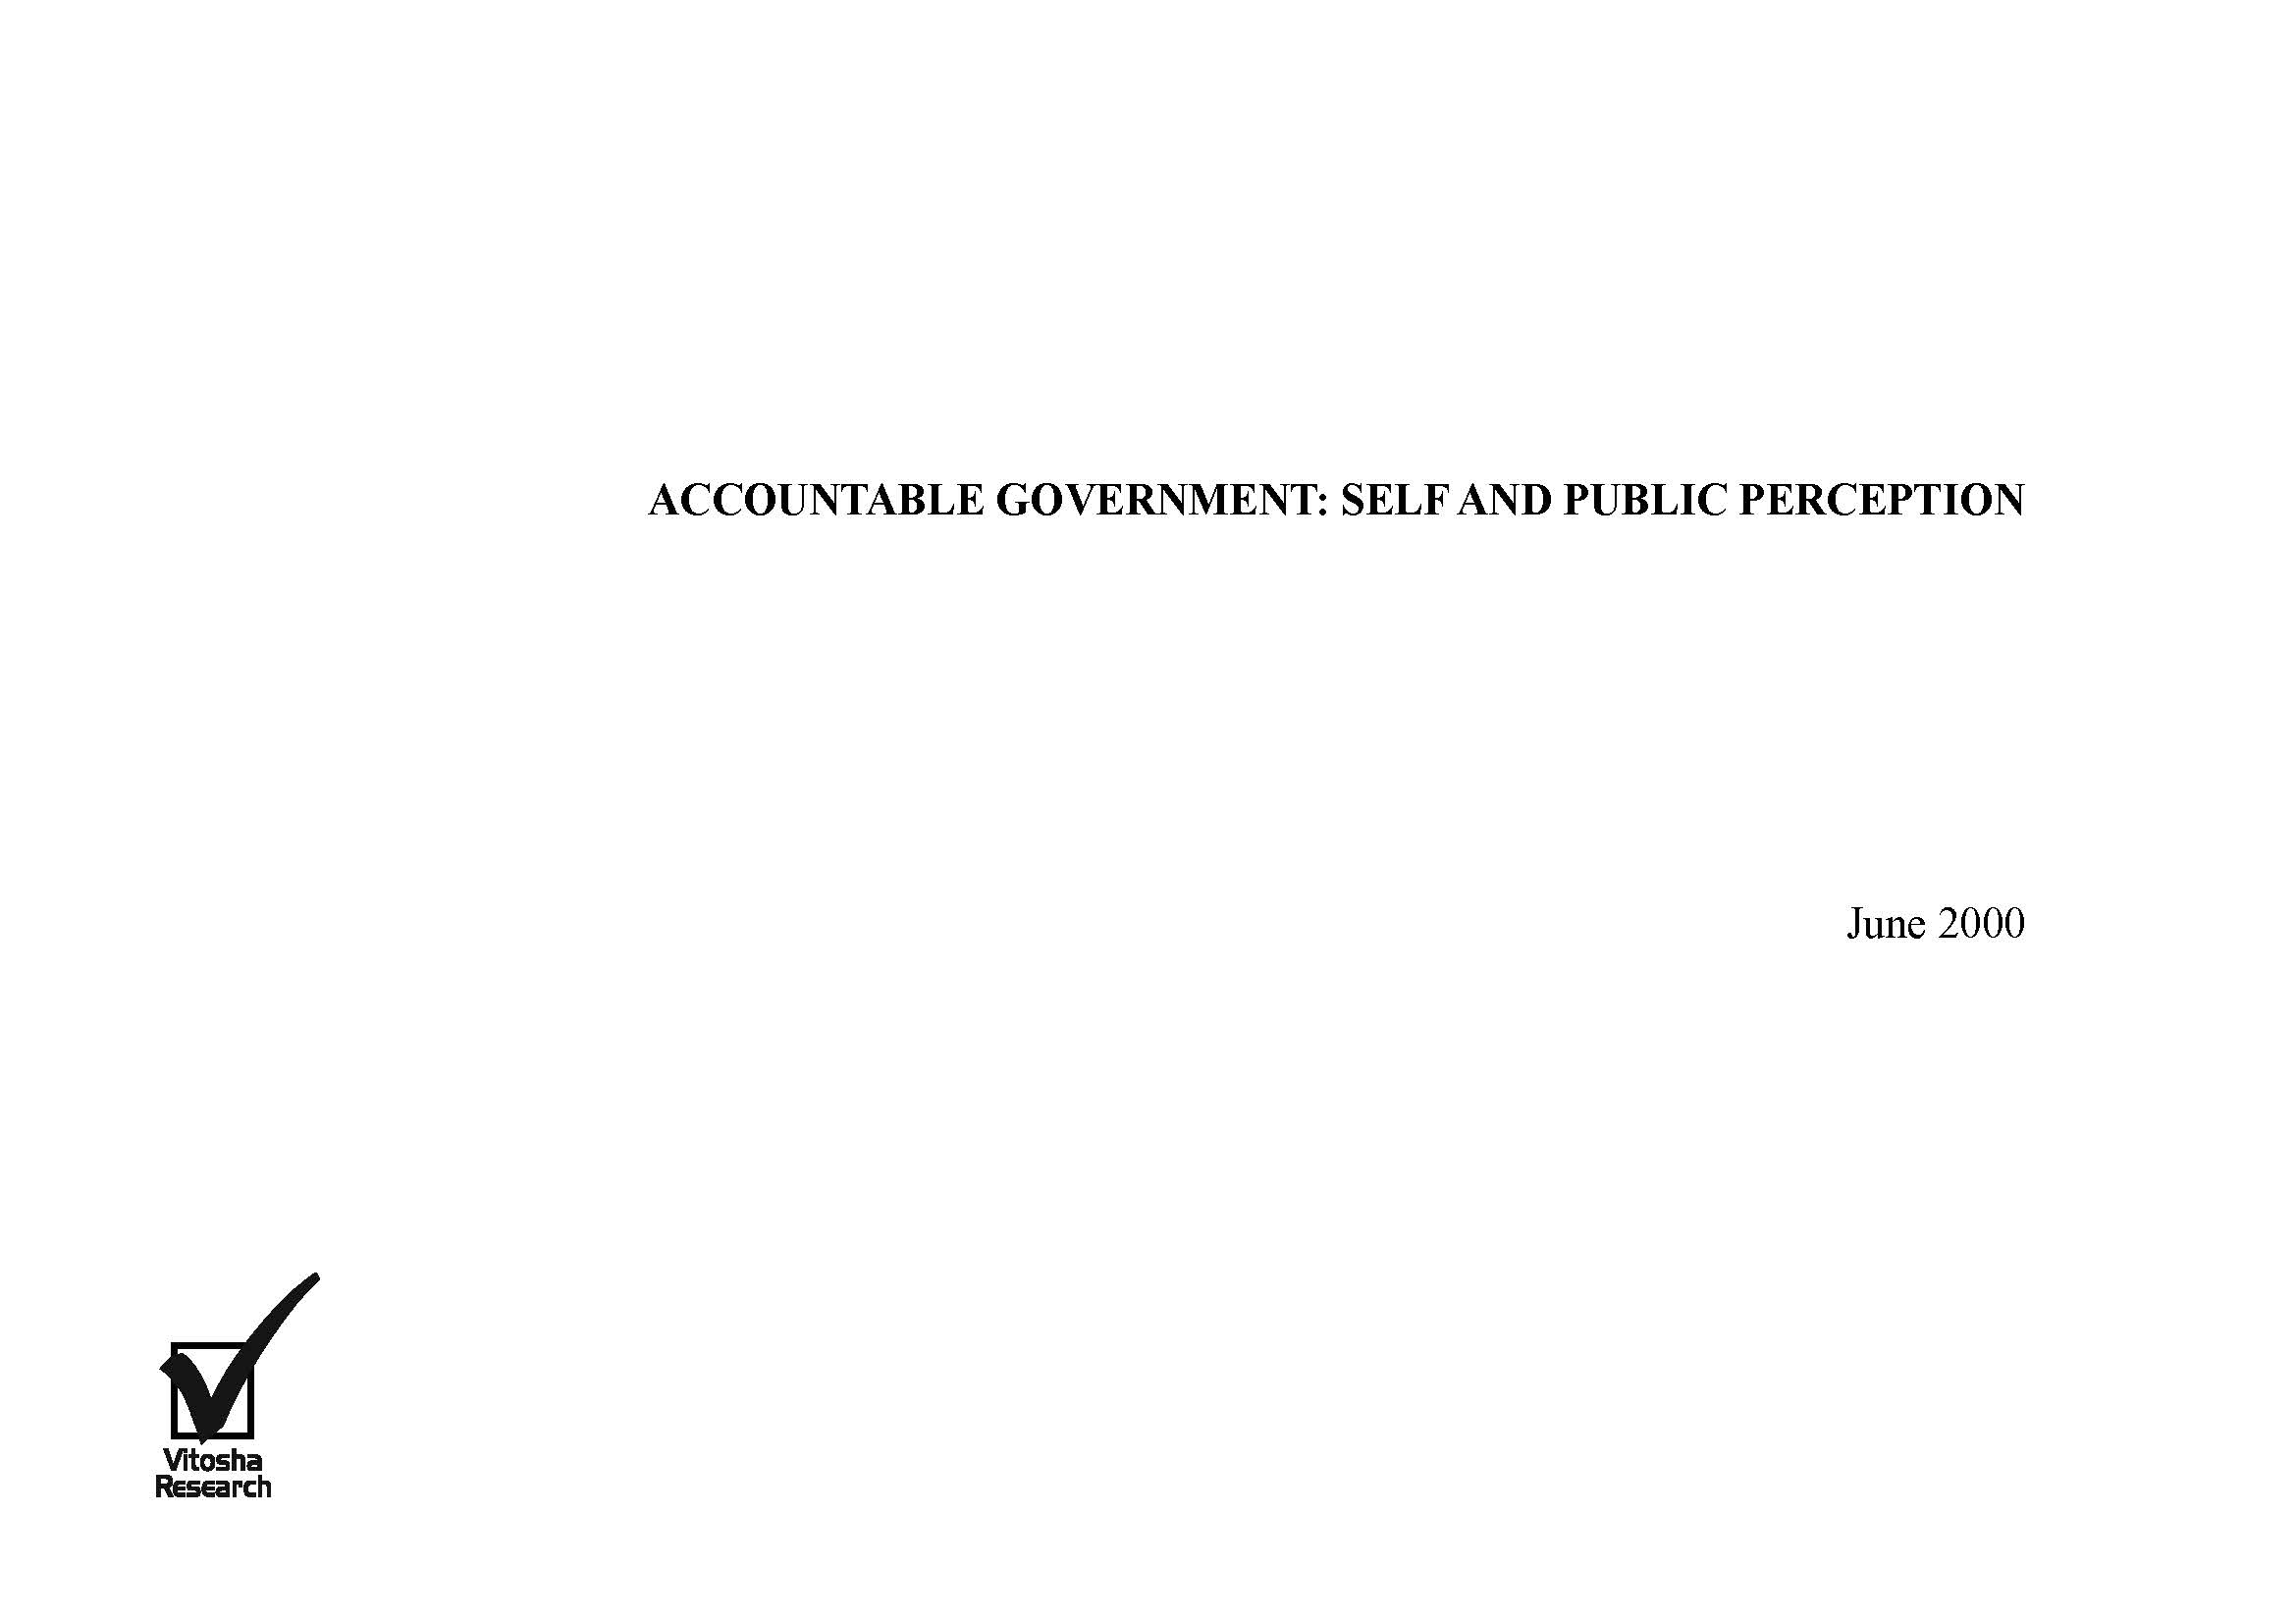 ACCOUNTABLE GOVERNMENT: SELF AND PUBLIC PERCEPTION